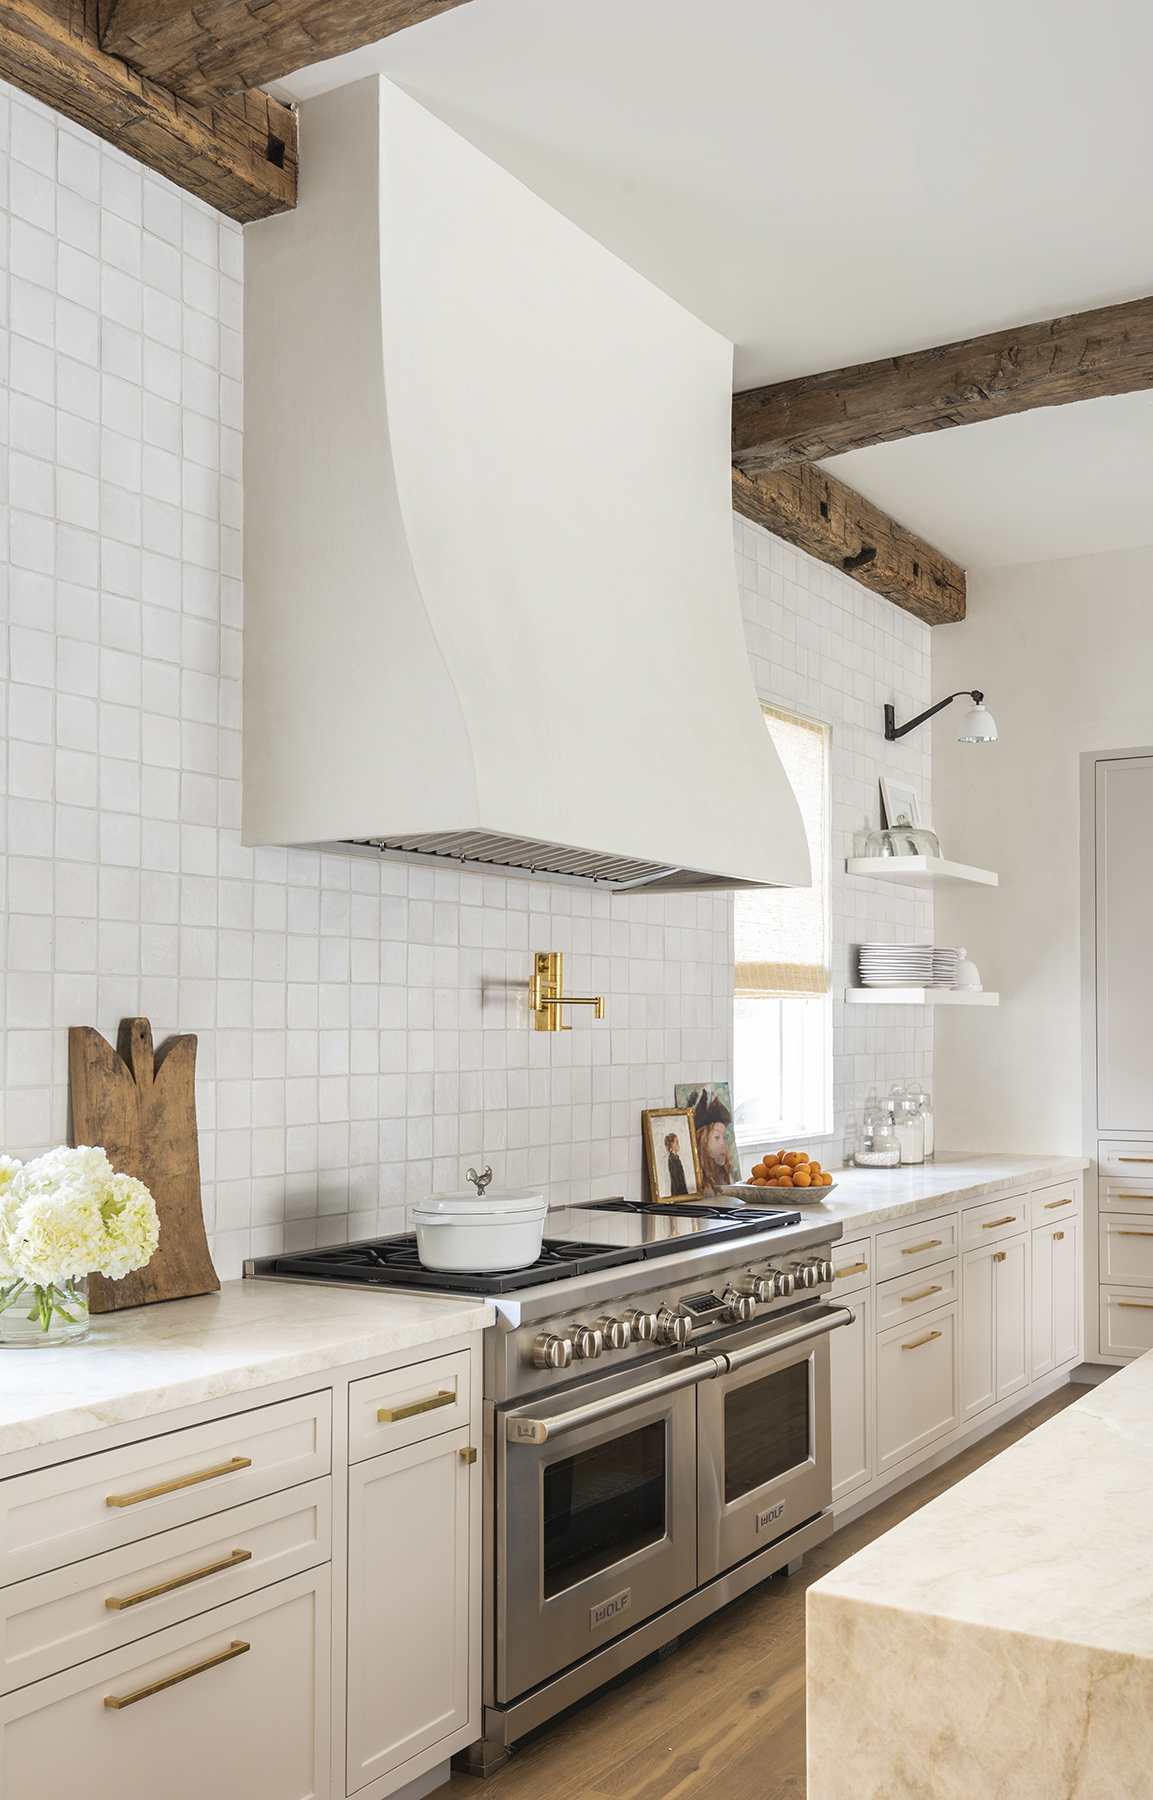 Bright bespoke kitchen design with view of stove and white vent